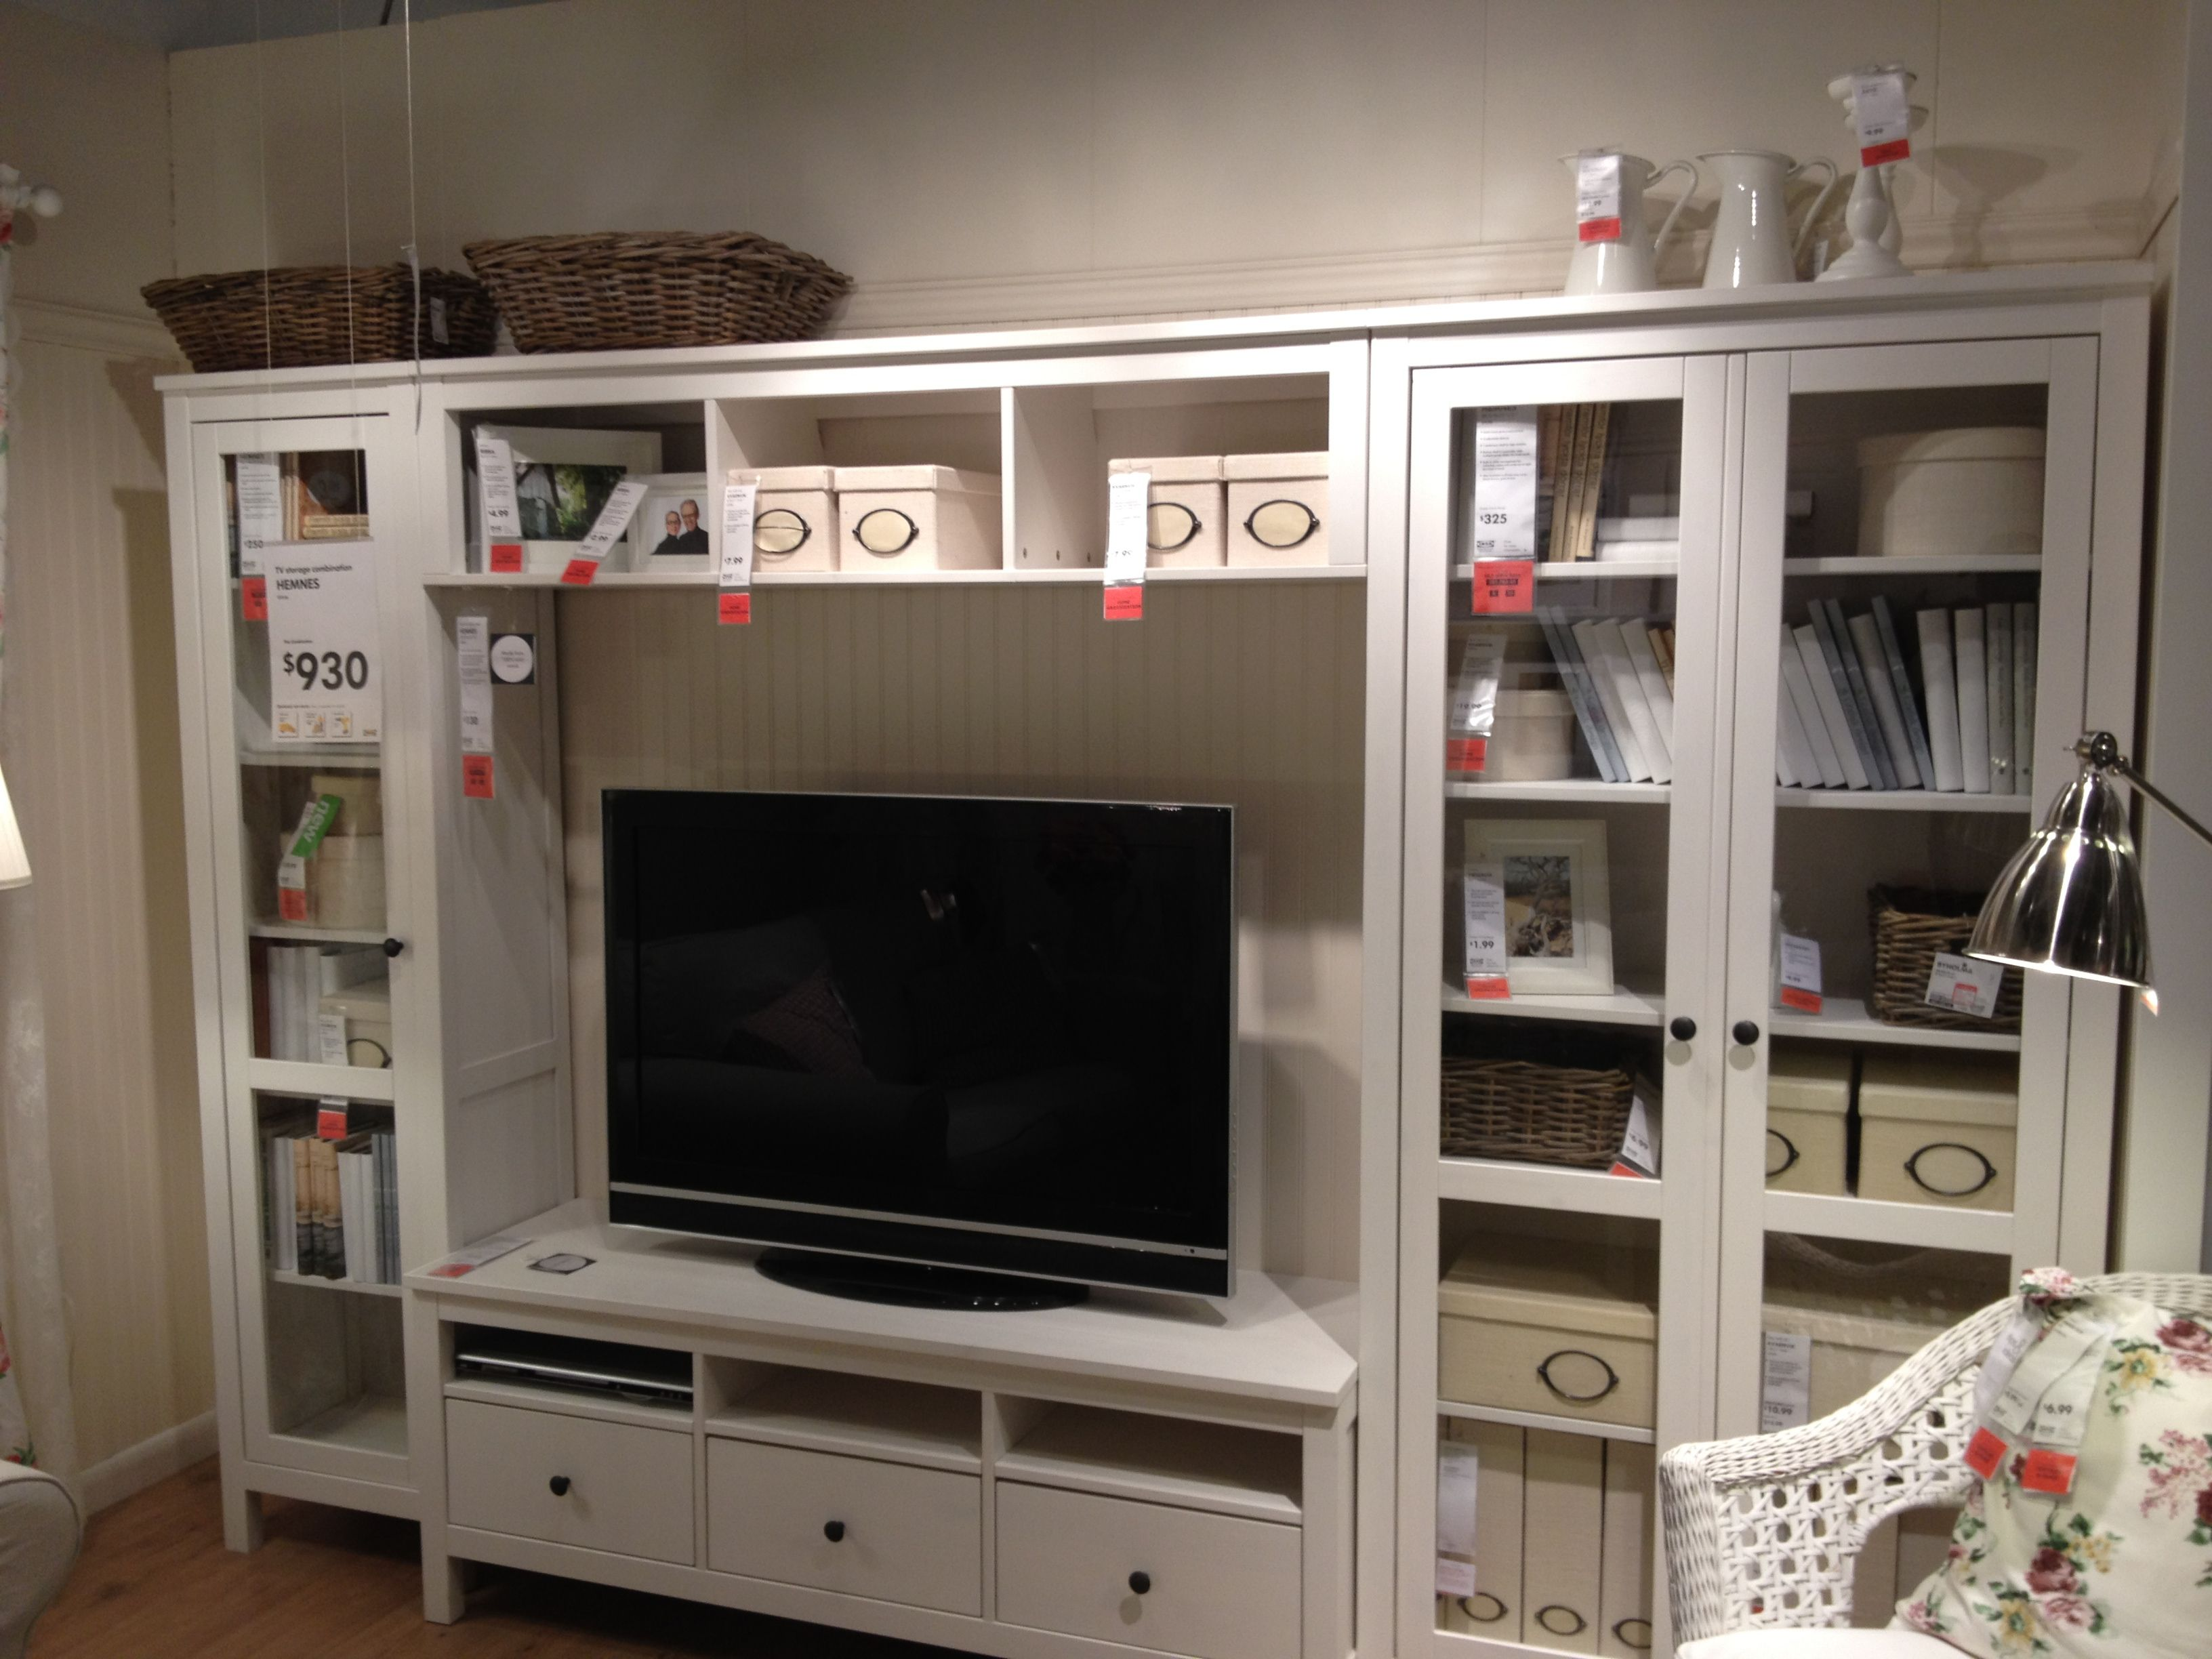 Hemnes Wohnzimmer Ideen Tv Storage Combination Ikea Hemnes 930 Loft Pinterest